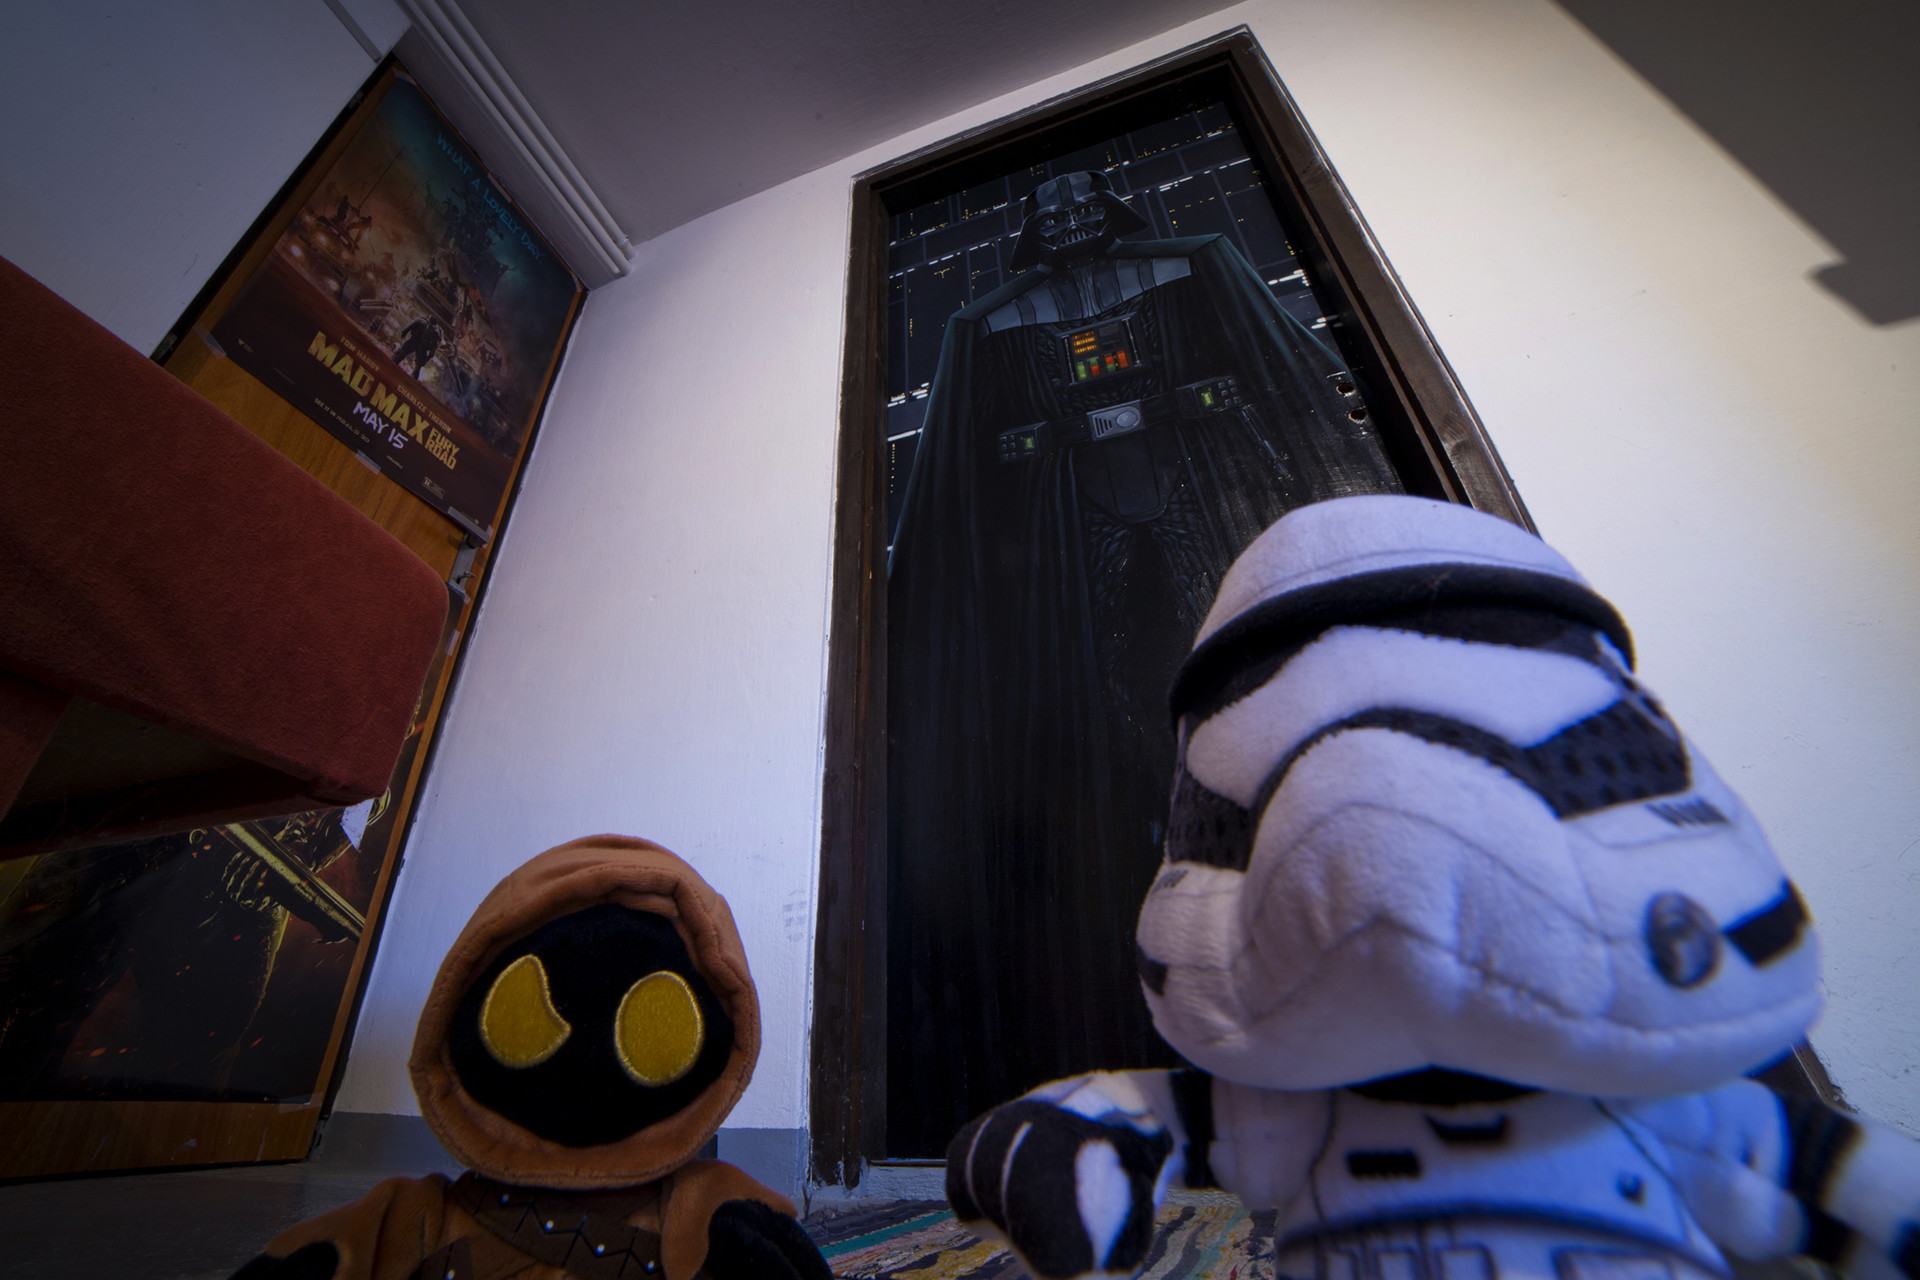 again from a different angle: playing with my new 14mm wide angle sigma lens and these two guys